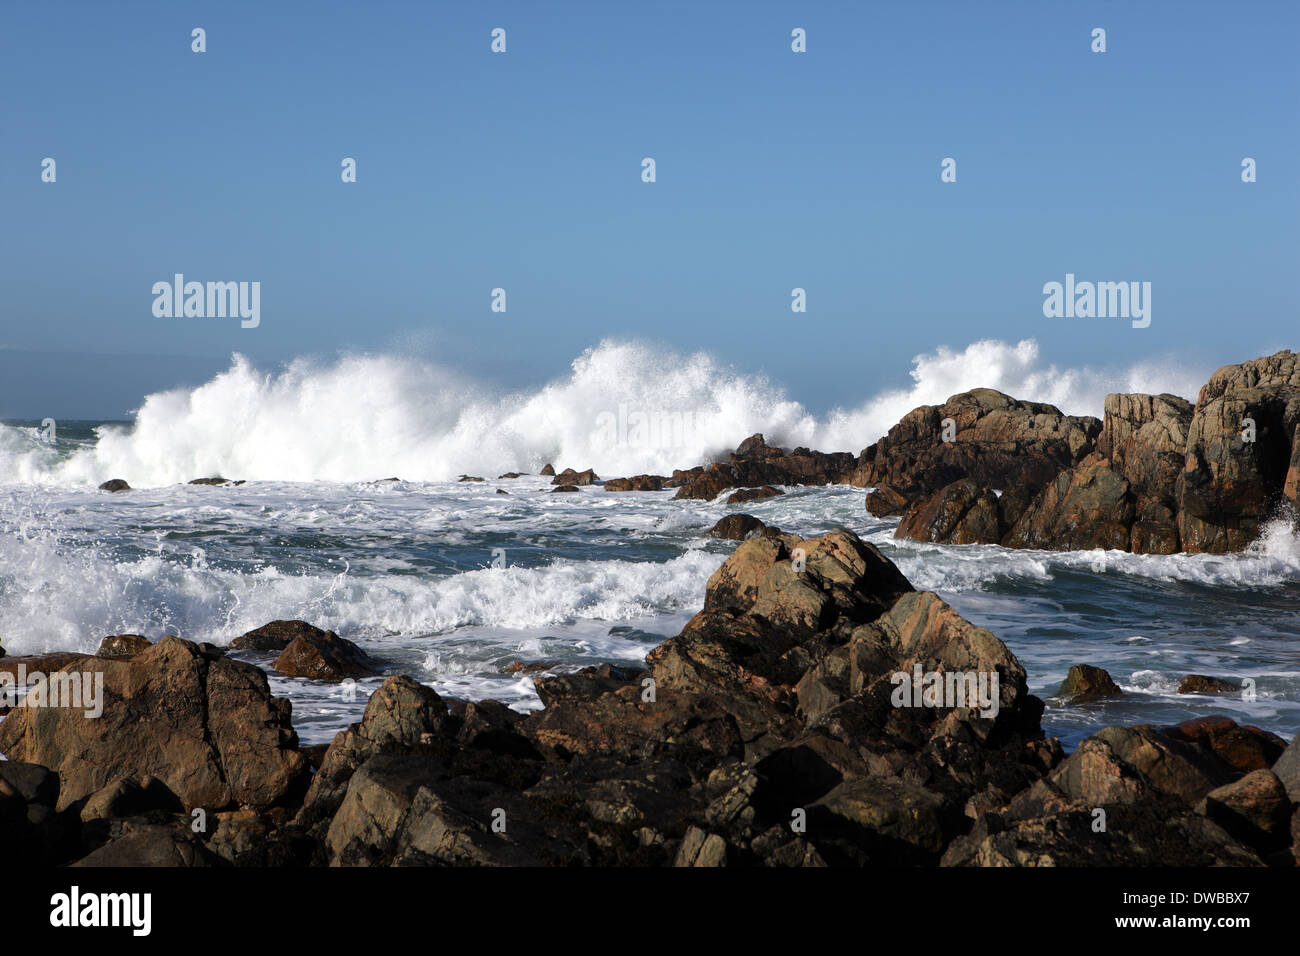 Waves crashing on the rocks on a beach in Iona one of the islands in the Inner Hebrides of Scotland - Stock Image